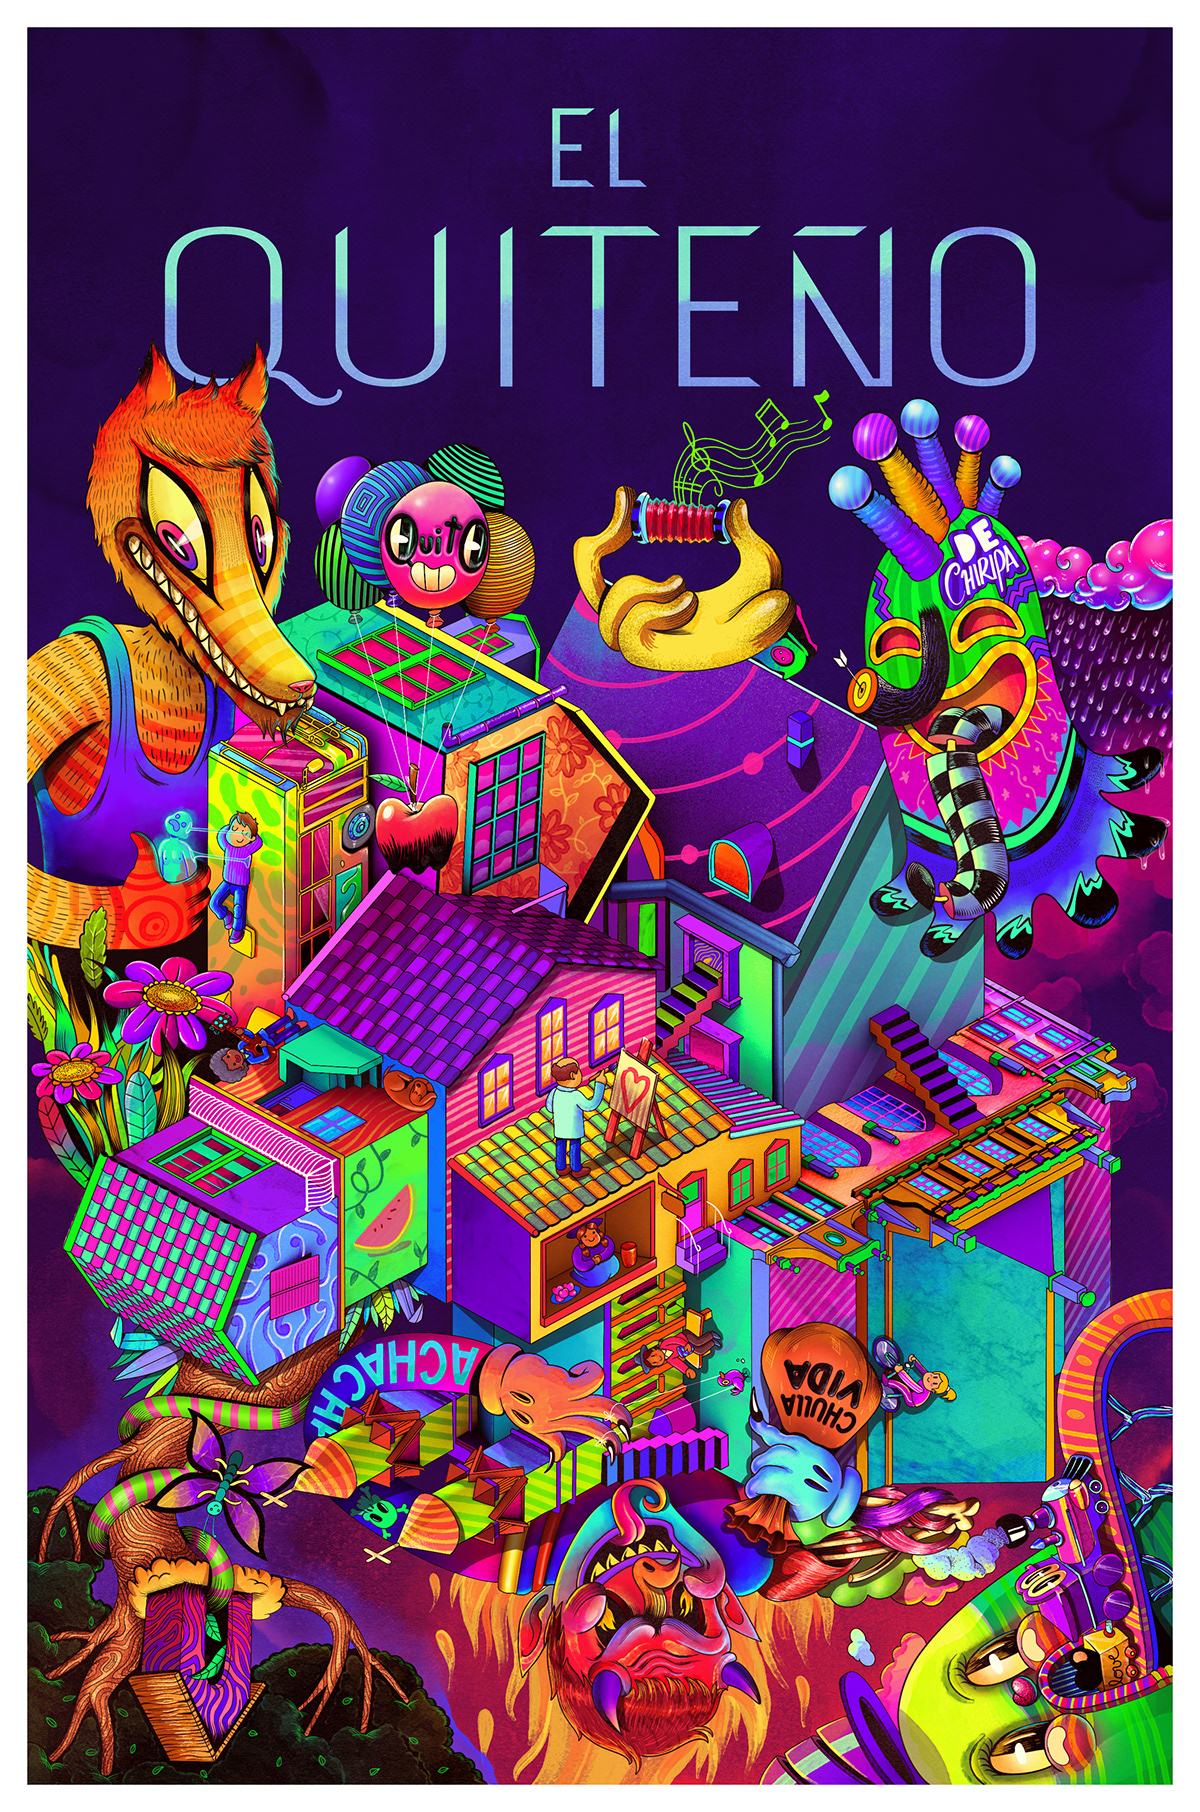 quito city colors house abstrac psychedelic demon people capital geometric